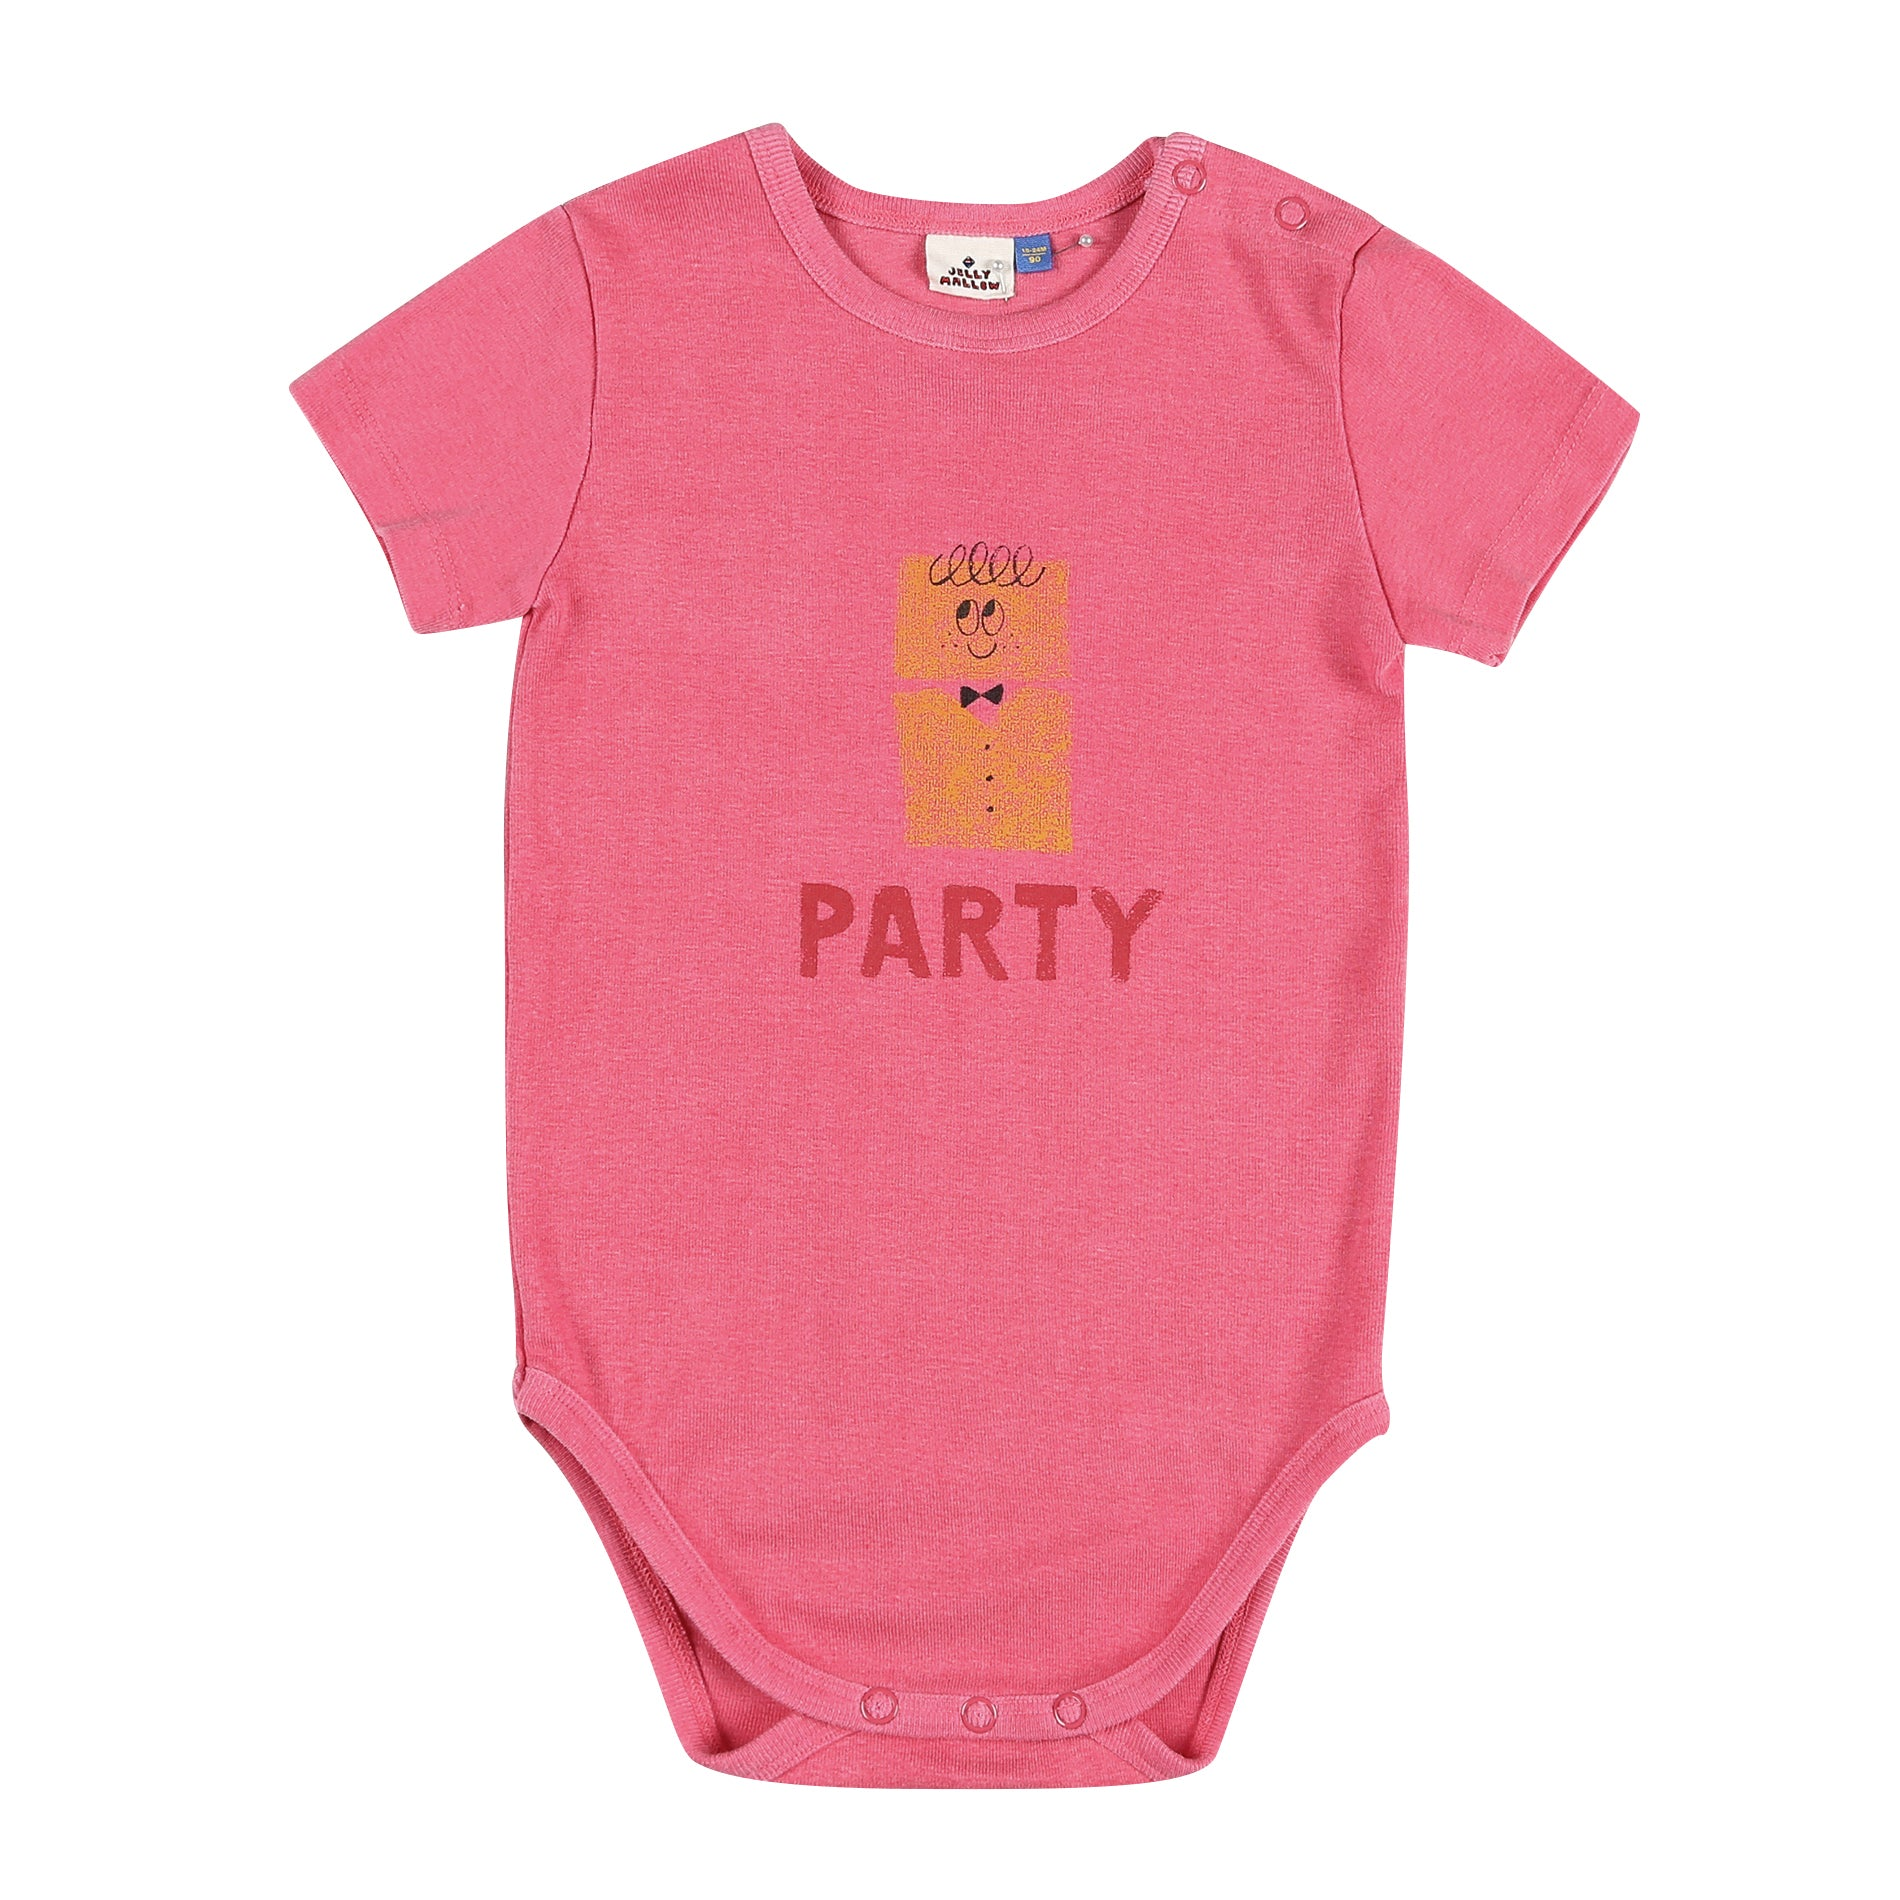 Party Short Sleeve Baby Body Cherry Pink